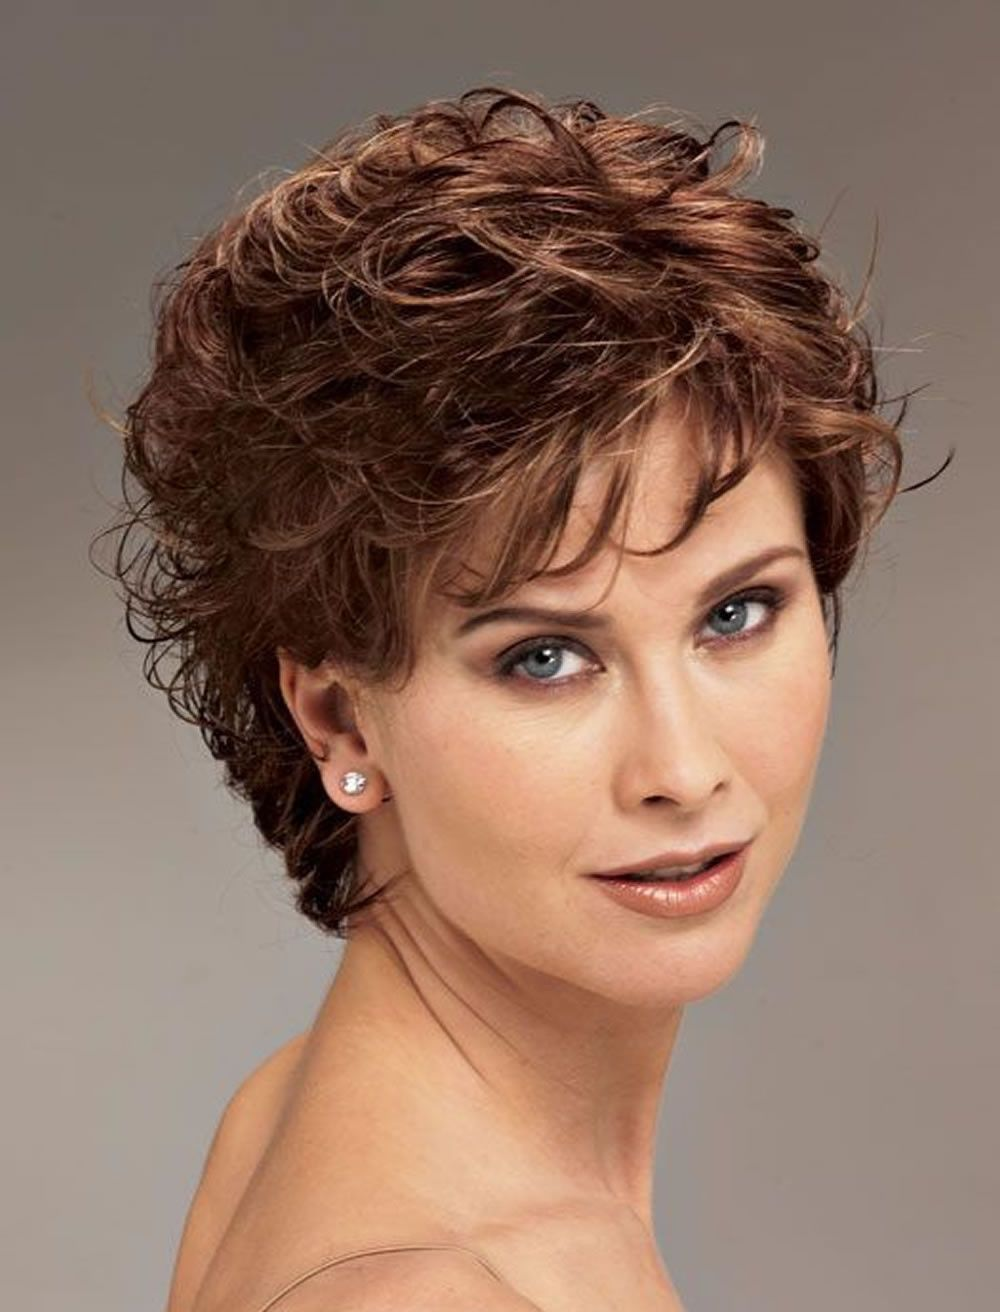 Curly Short Hairstyles For Older Women Over 50 Best Short Haircuts 2018 2019 8 Short Curly Hairstyles For Women Short Hair Styles Curly Hair Women